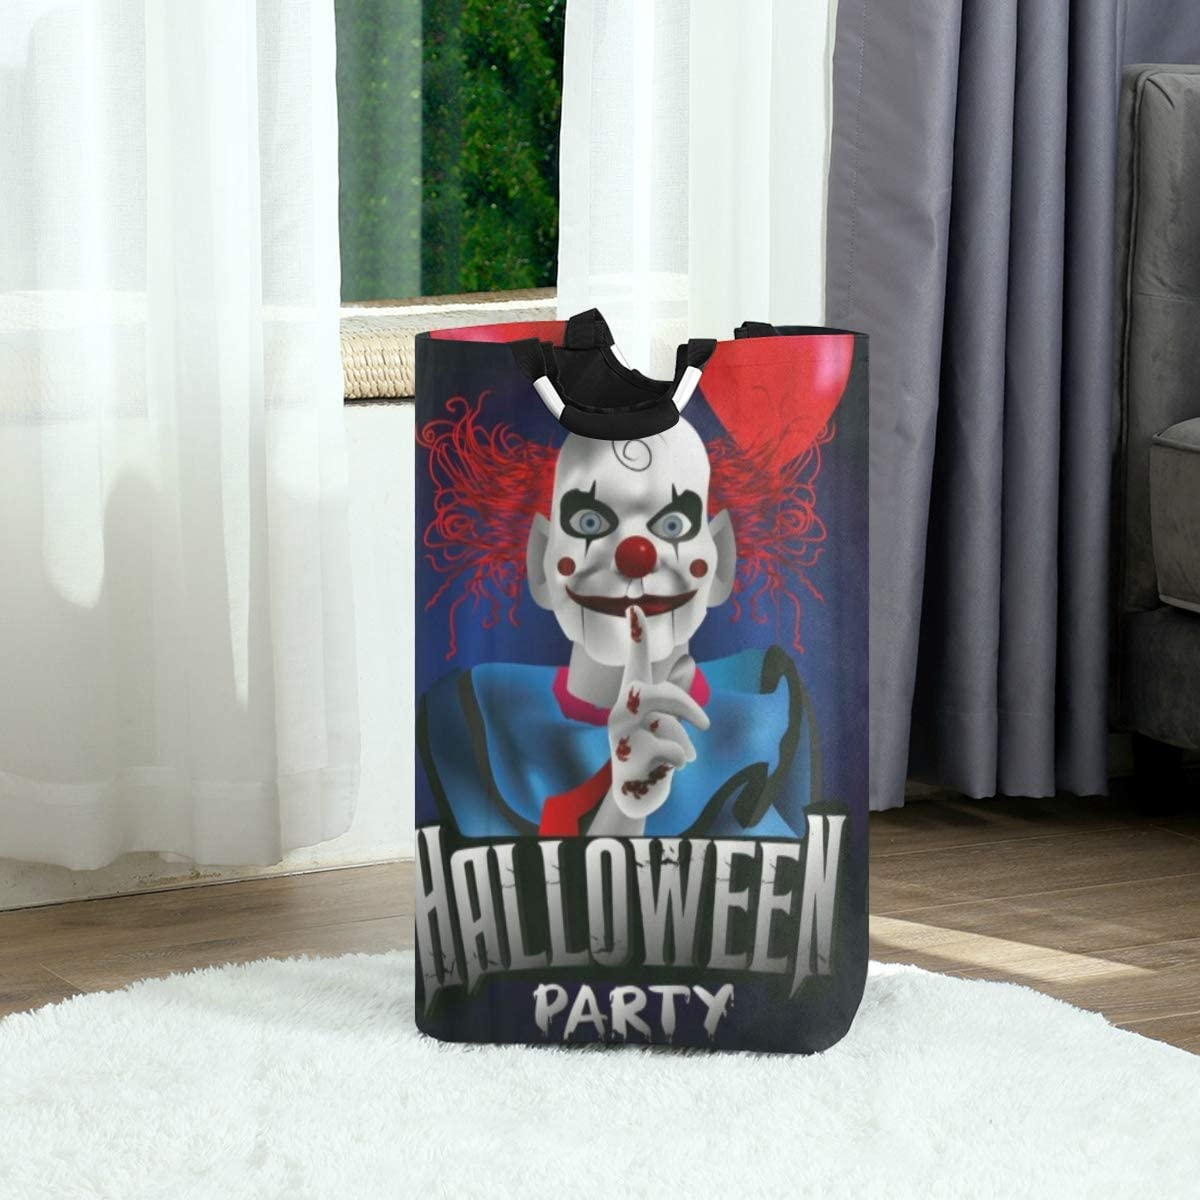 DAOPUDA Laundry Bag Scary Clown with Balloon Halloween Party Flyer Large Laundry Hamper Bags for Heavy-Duty Use with Strap,Standing Clothes Basket Collapsible for Dorm Travel Bathroom